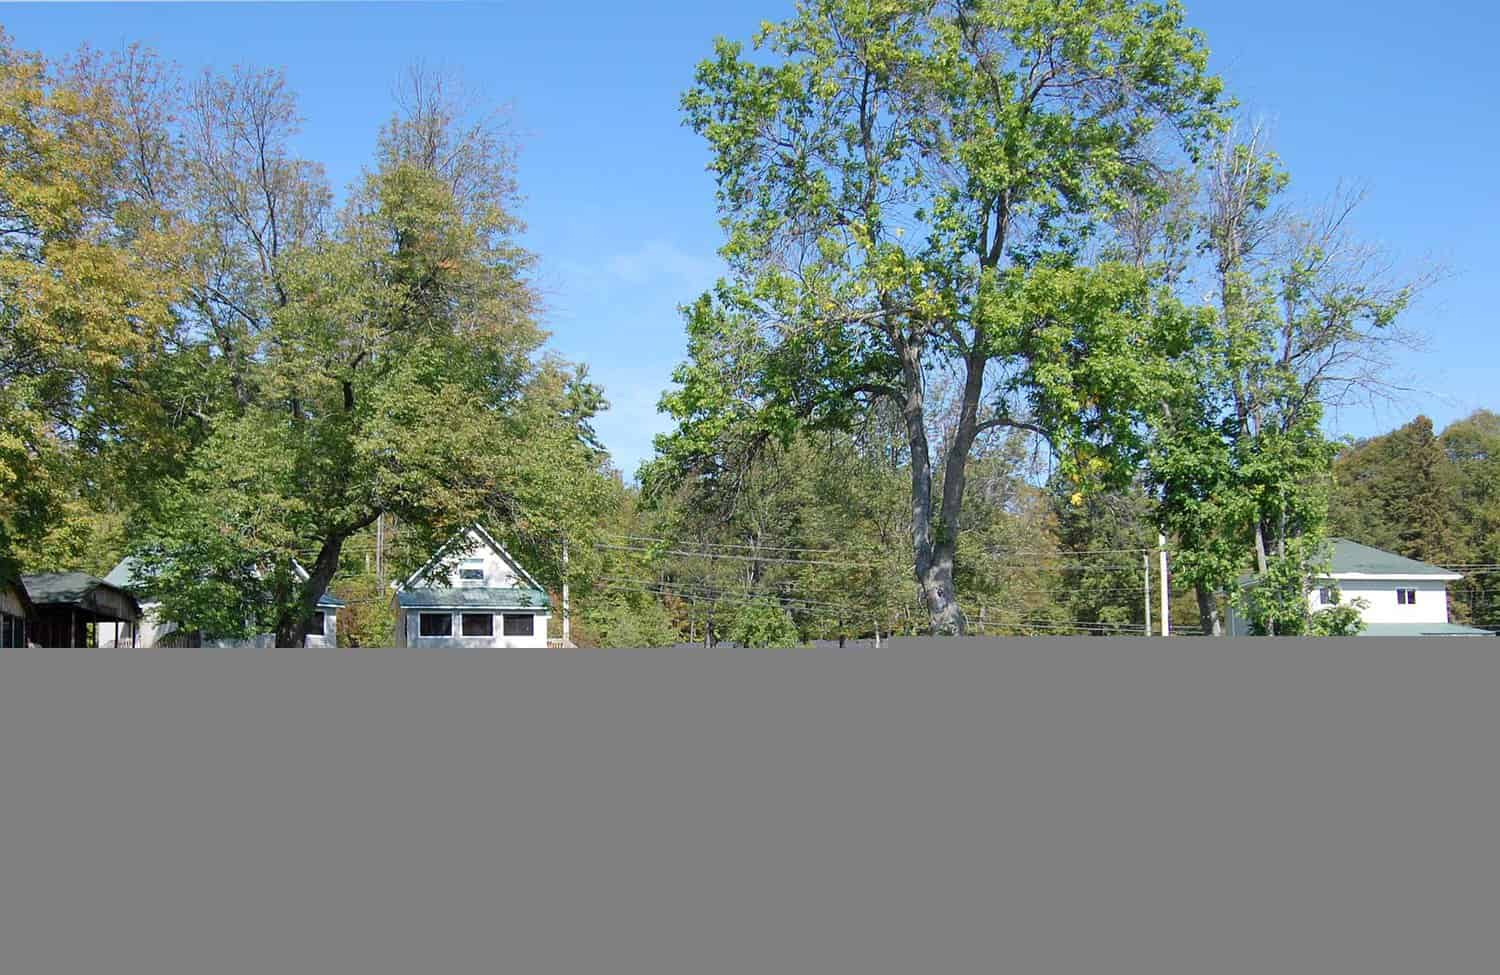 View from the lake of Jocko's Beach Resort & Motel in summer